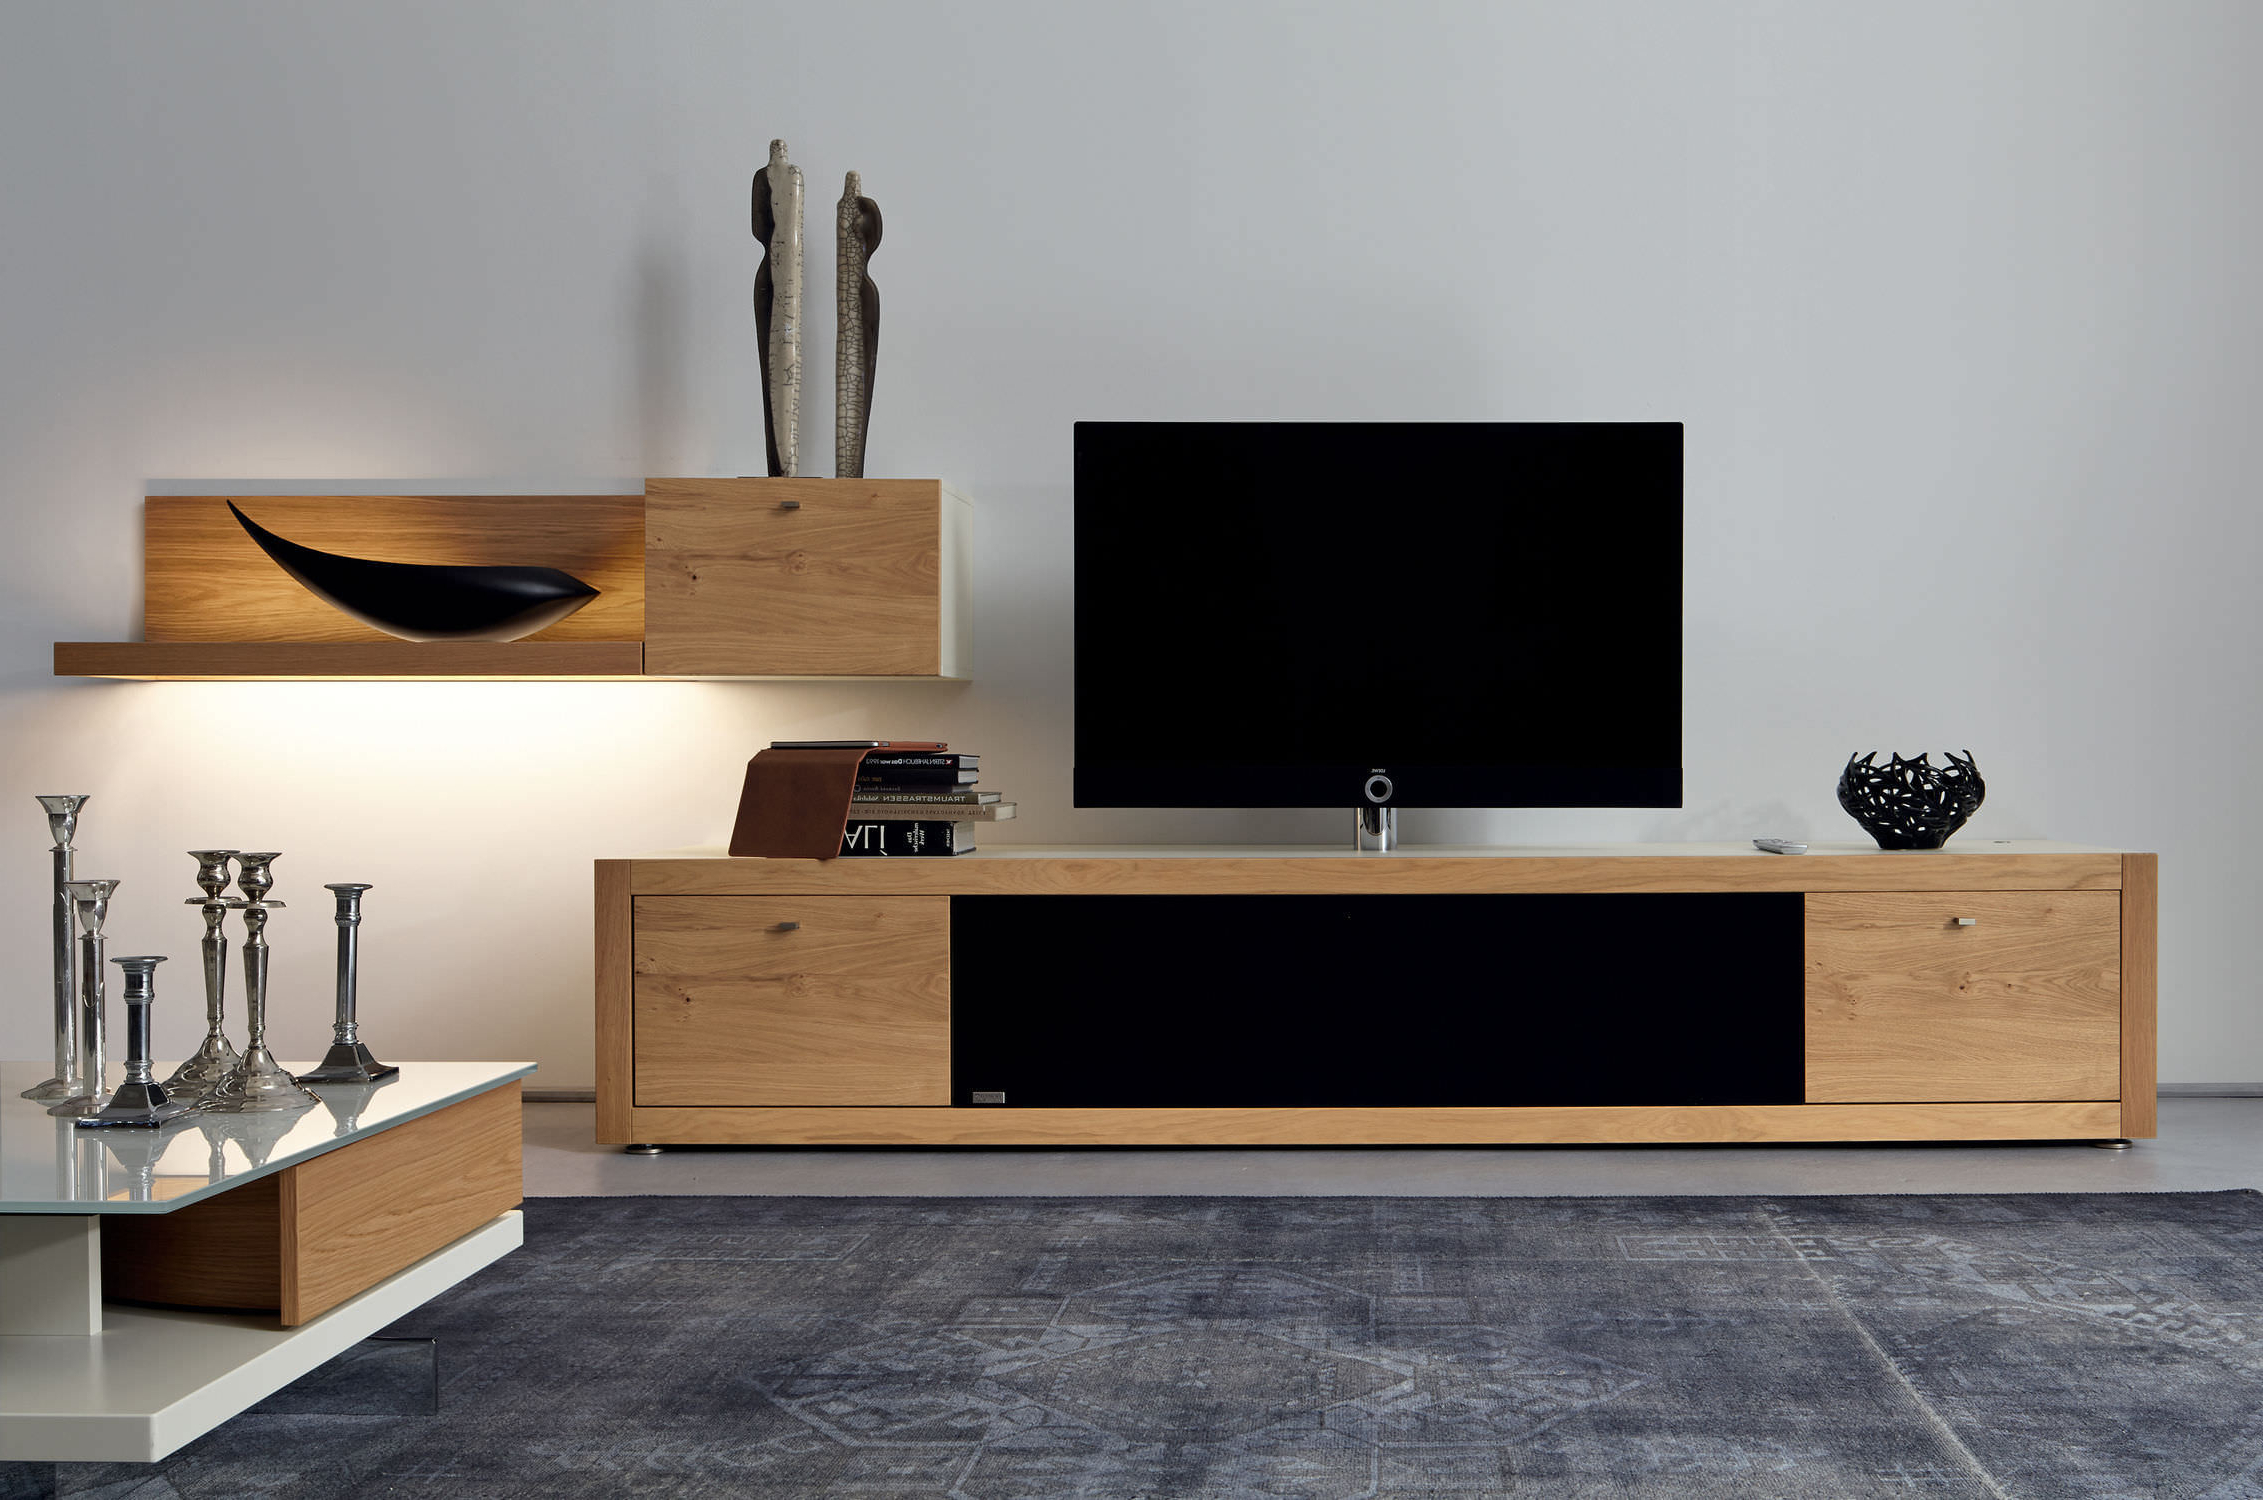 Most Recent Trendy Tv Stands Throughout 35 Crazy Trendy Tv Units Contemporary Style That Look So Creepy (View 9 of 20)